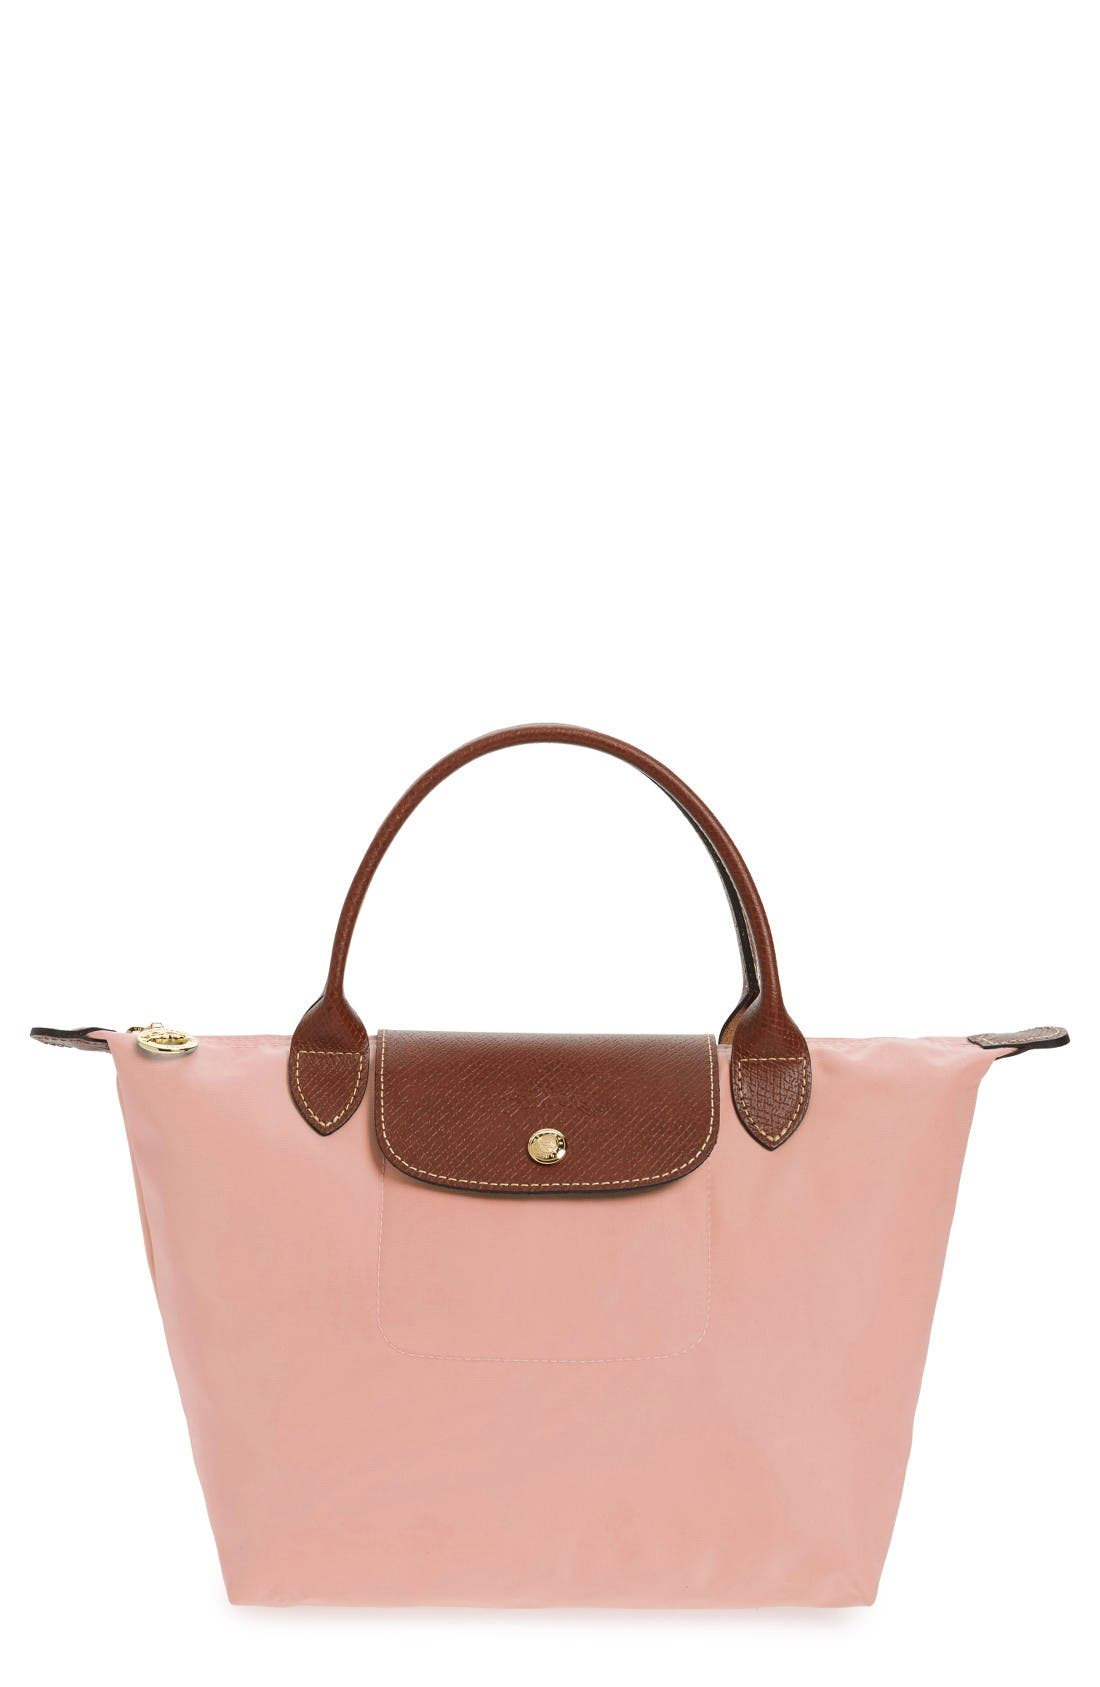 Alternate Image 1 Selected - Longchamp 'Mini Le Pliage' Handbag